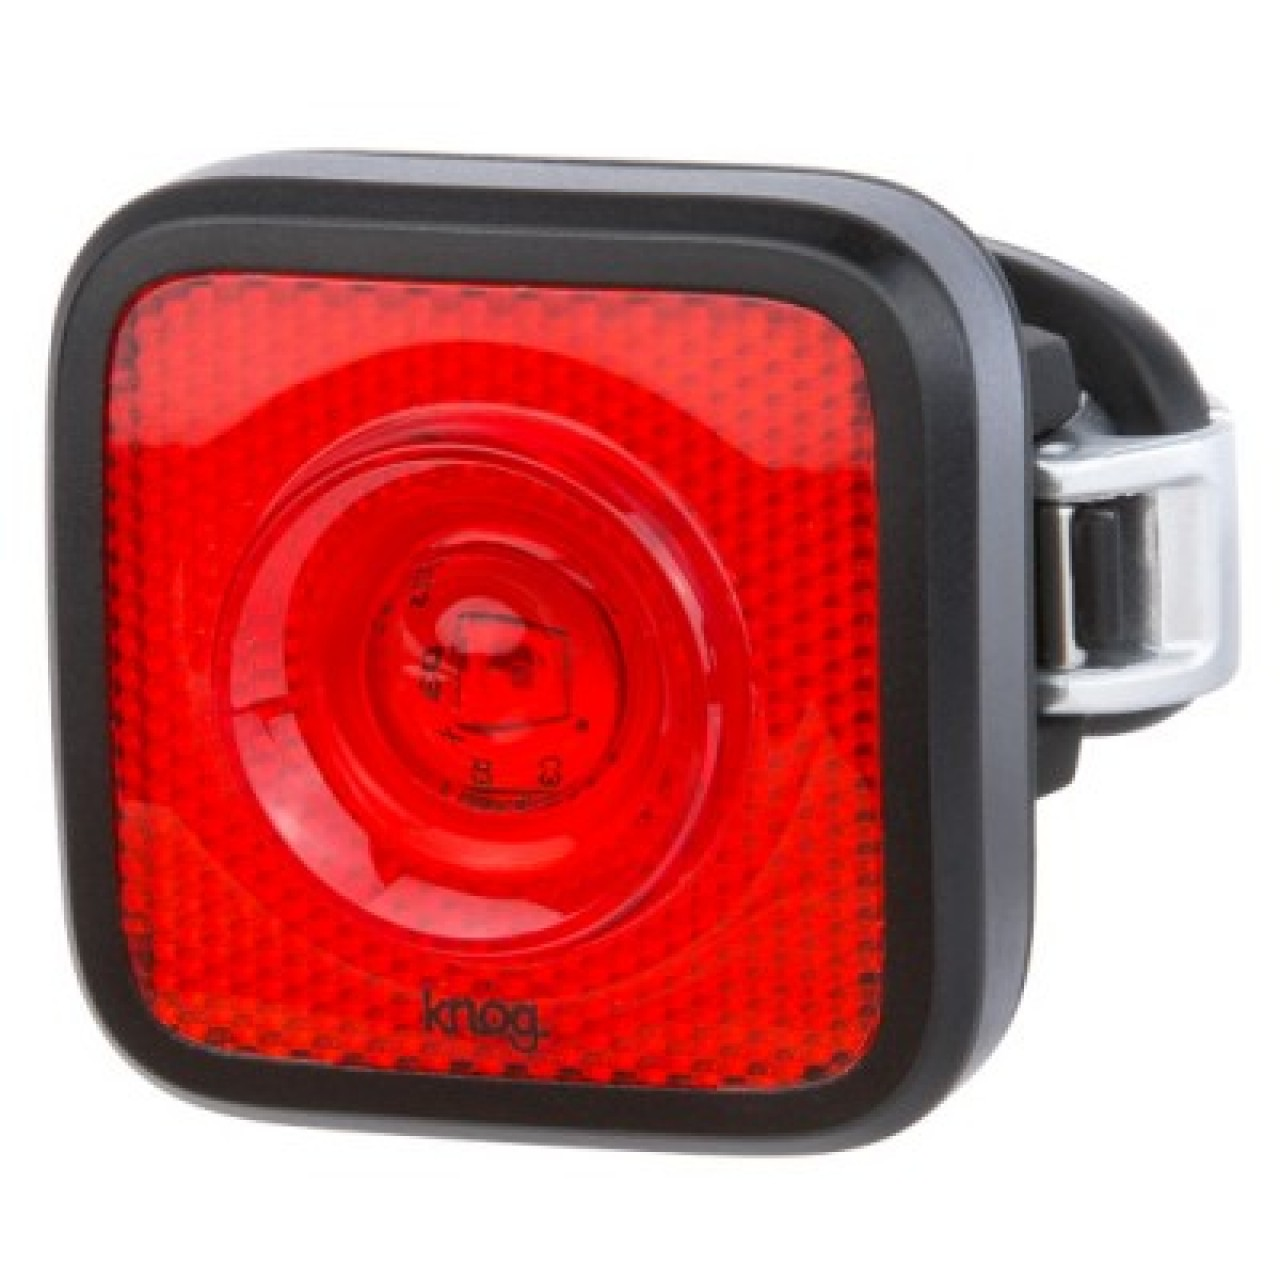 knog blinder mob rear light with stvzo 49 90. Black Bedroom Furniture Sets. Home Design Ideas